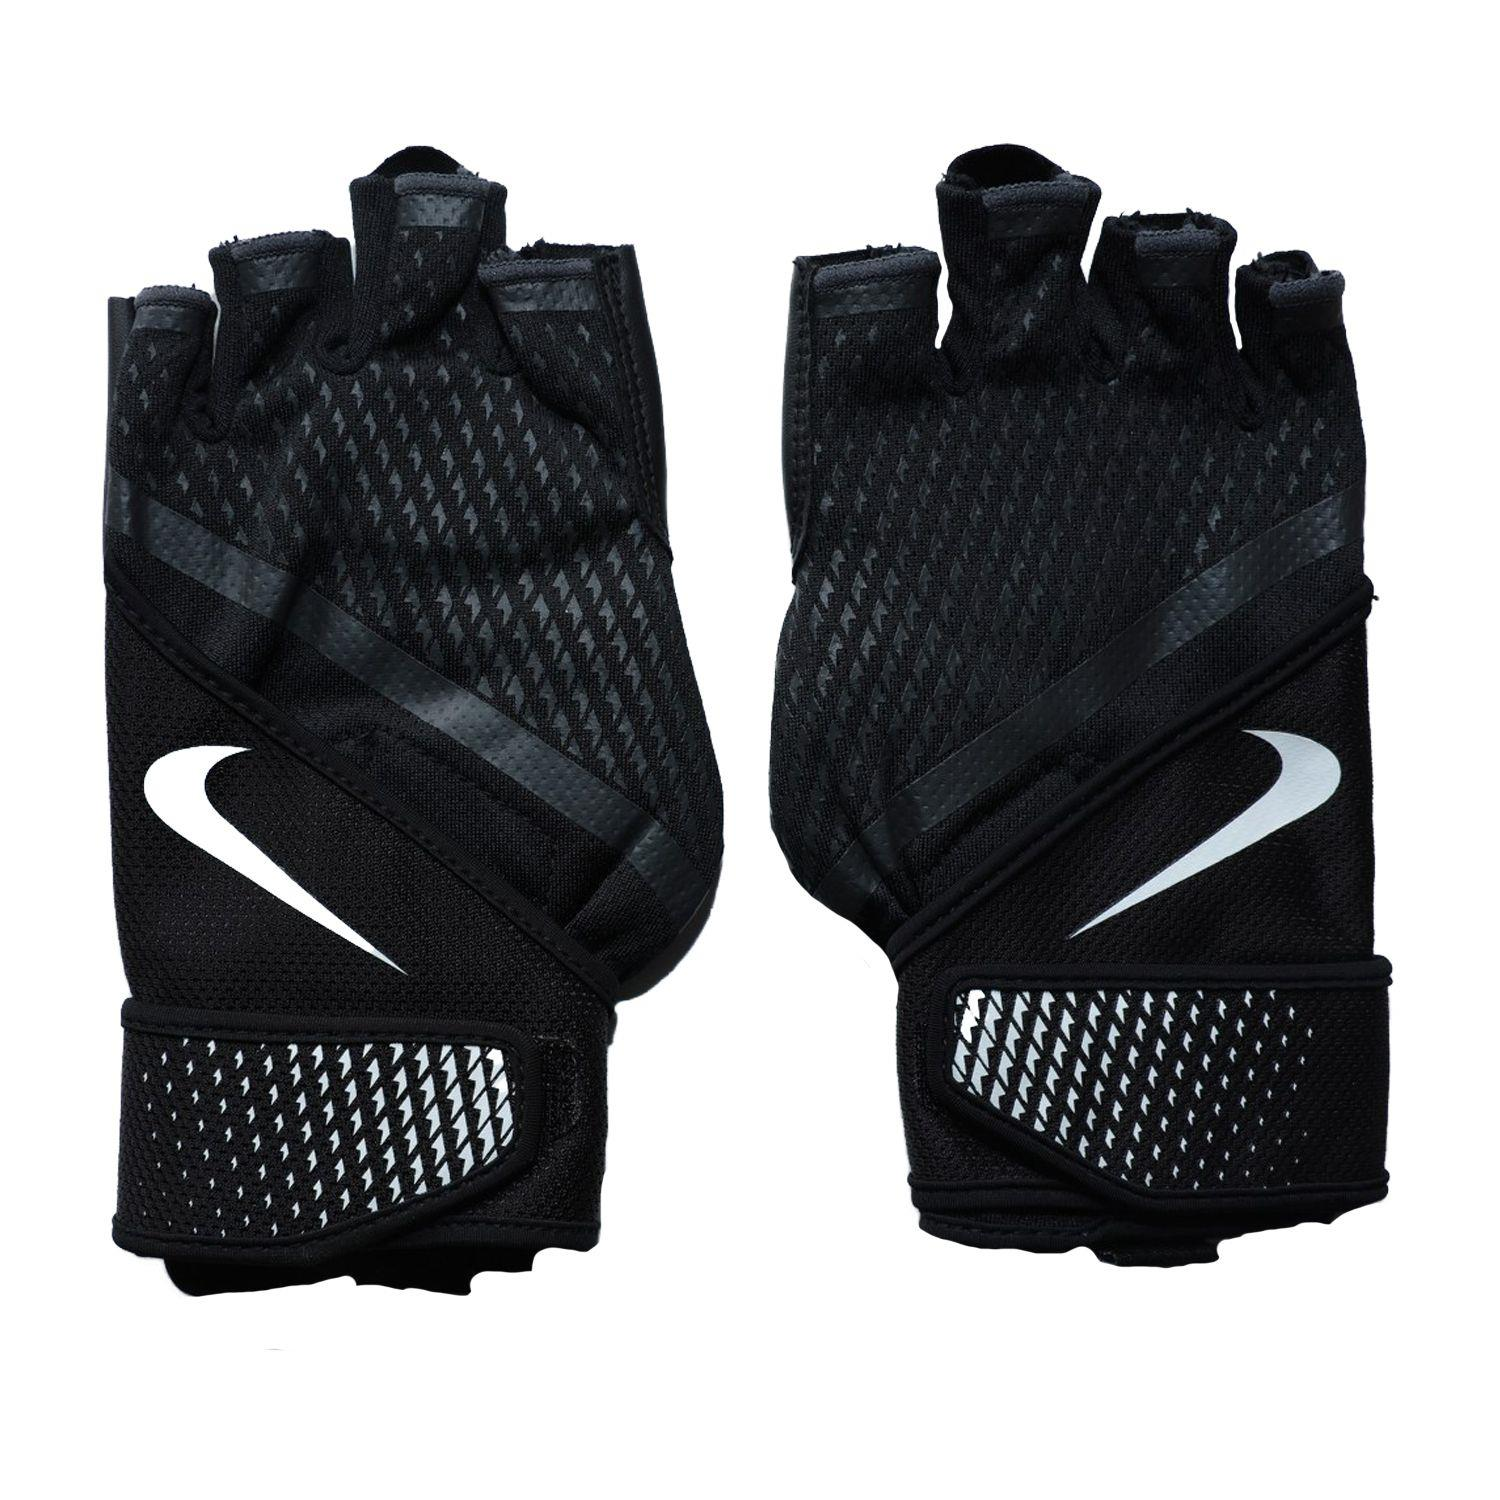 Nike N.LG.B4.031.LG MEN'S DESTROYER TRAINING GLOVES SPOR GYM FITNESS AĞIRLIK ELDİVENİ L BEDEN